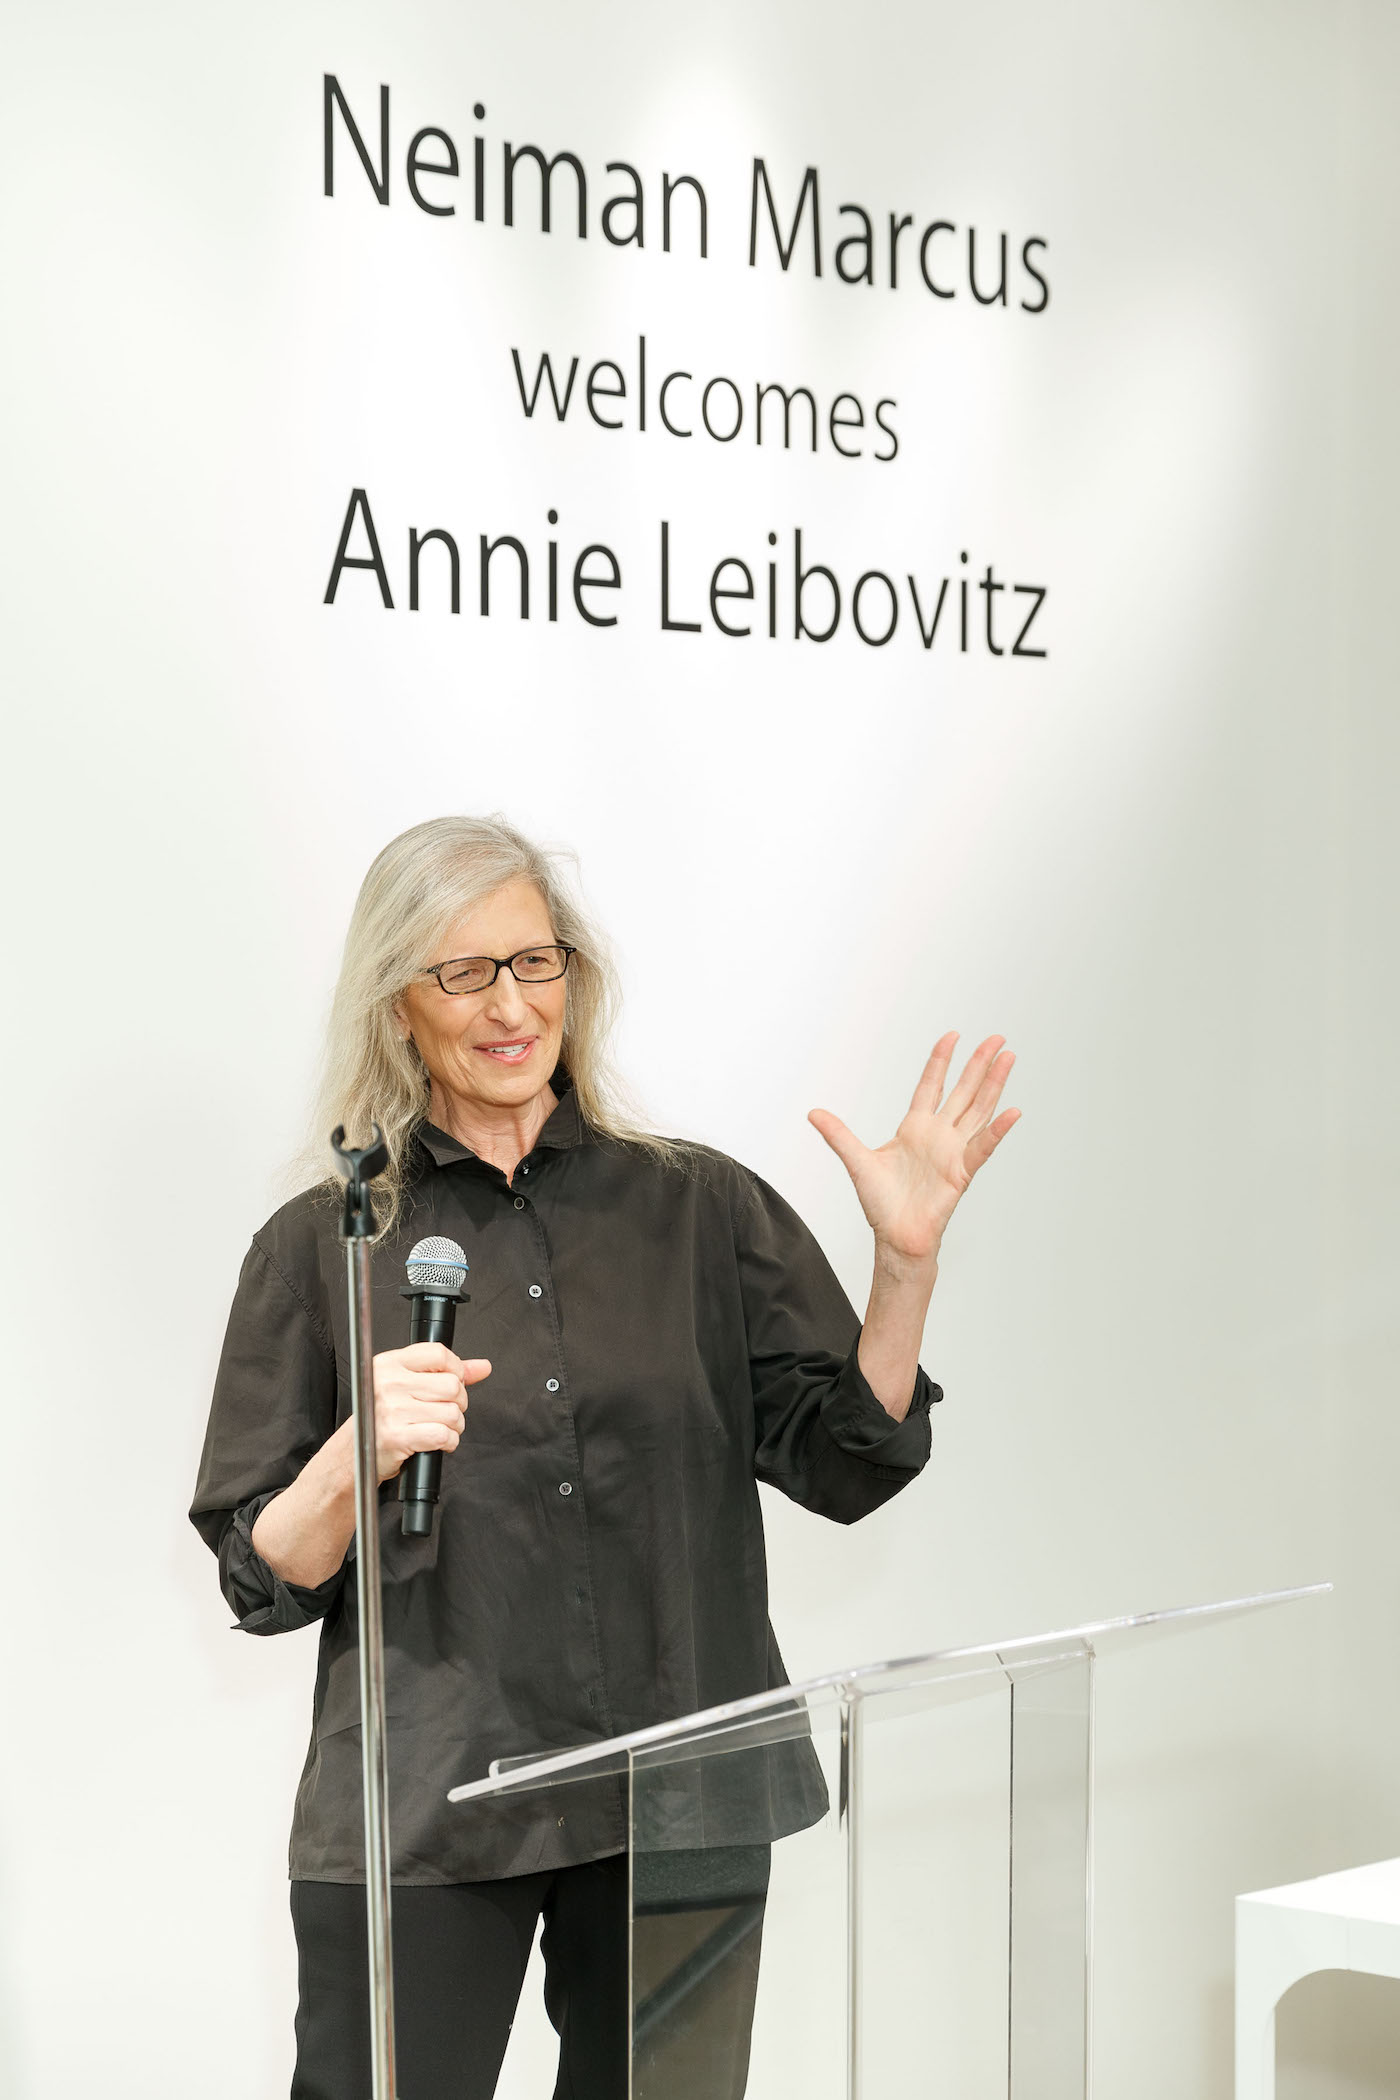 Annie Leibovitz At A Book Signing Neiman Marcus In San Francisco